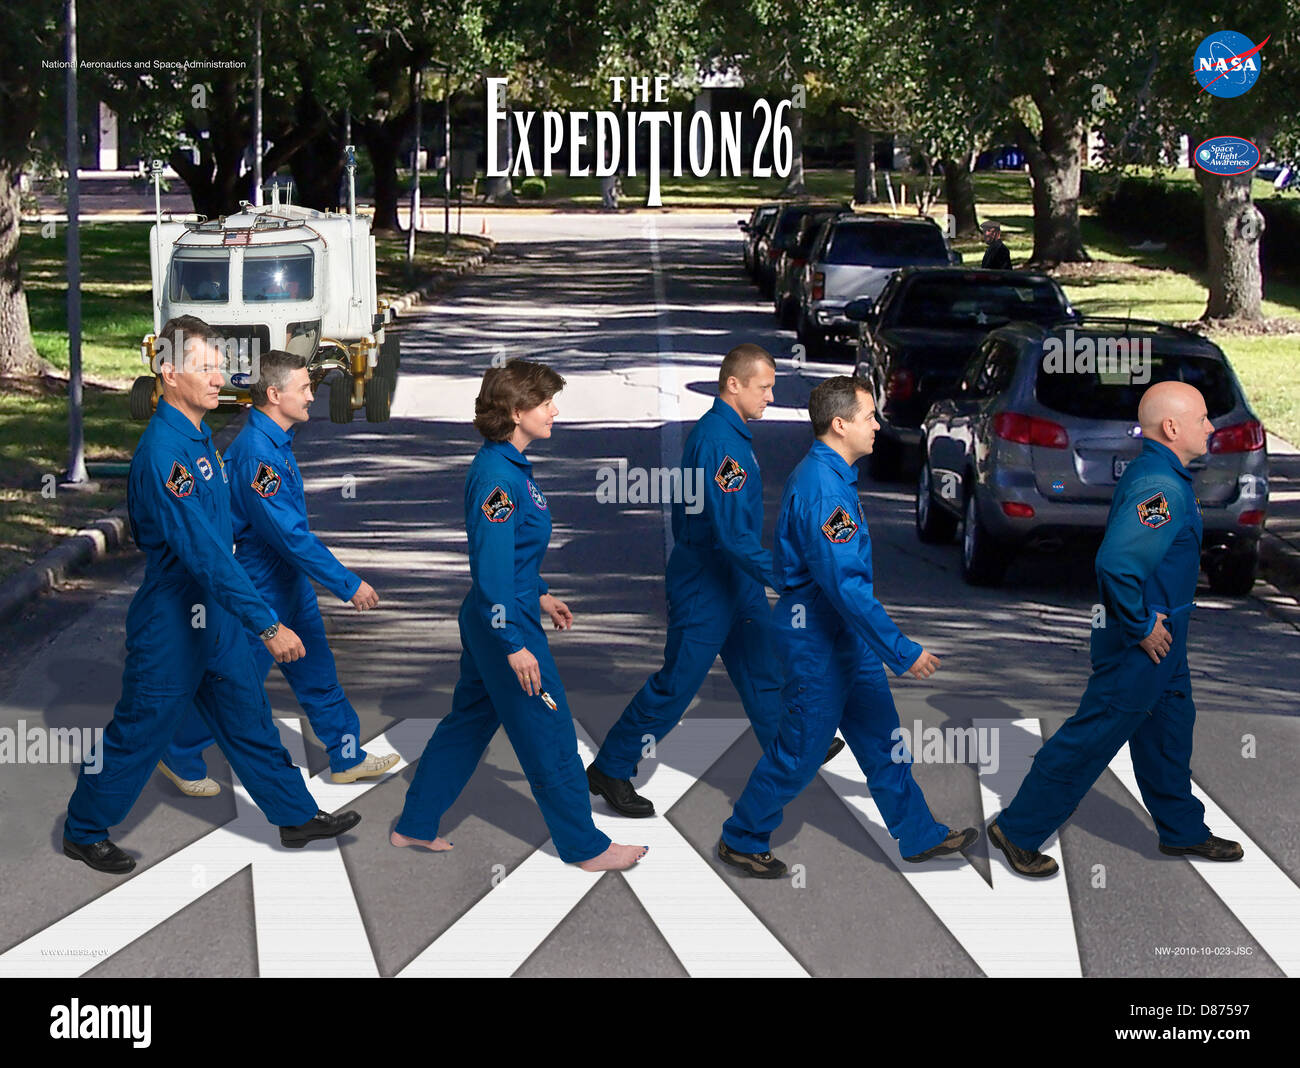 Expedition 26 Abbey Road crew poster.jpg - Stock Image